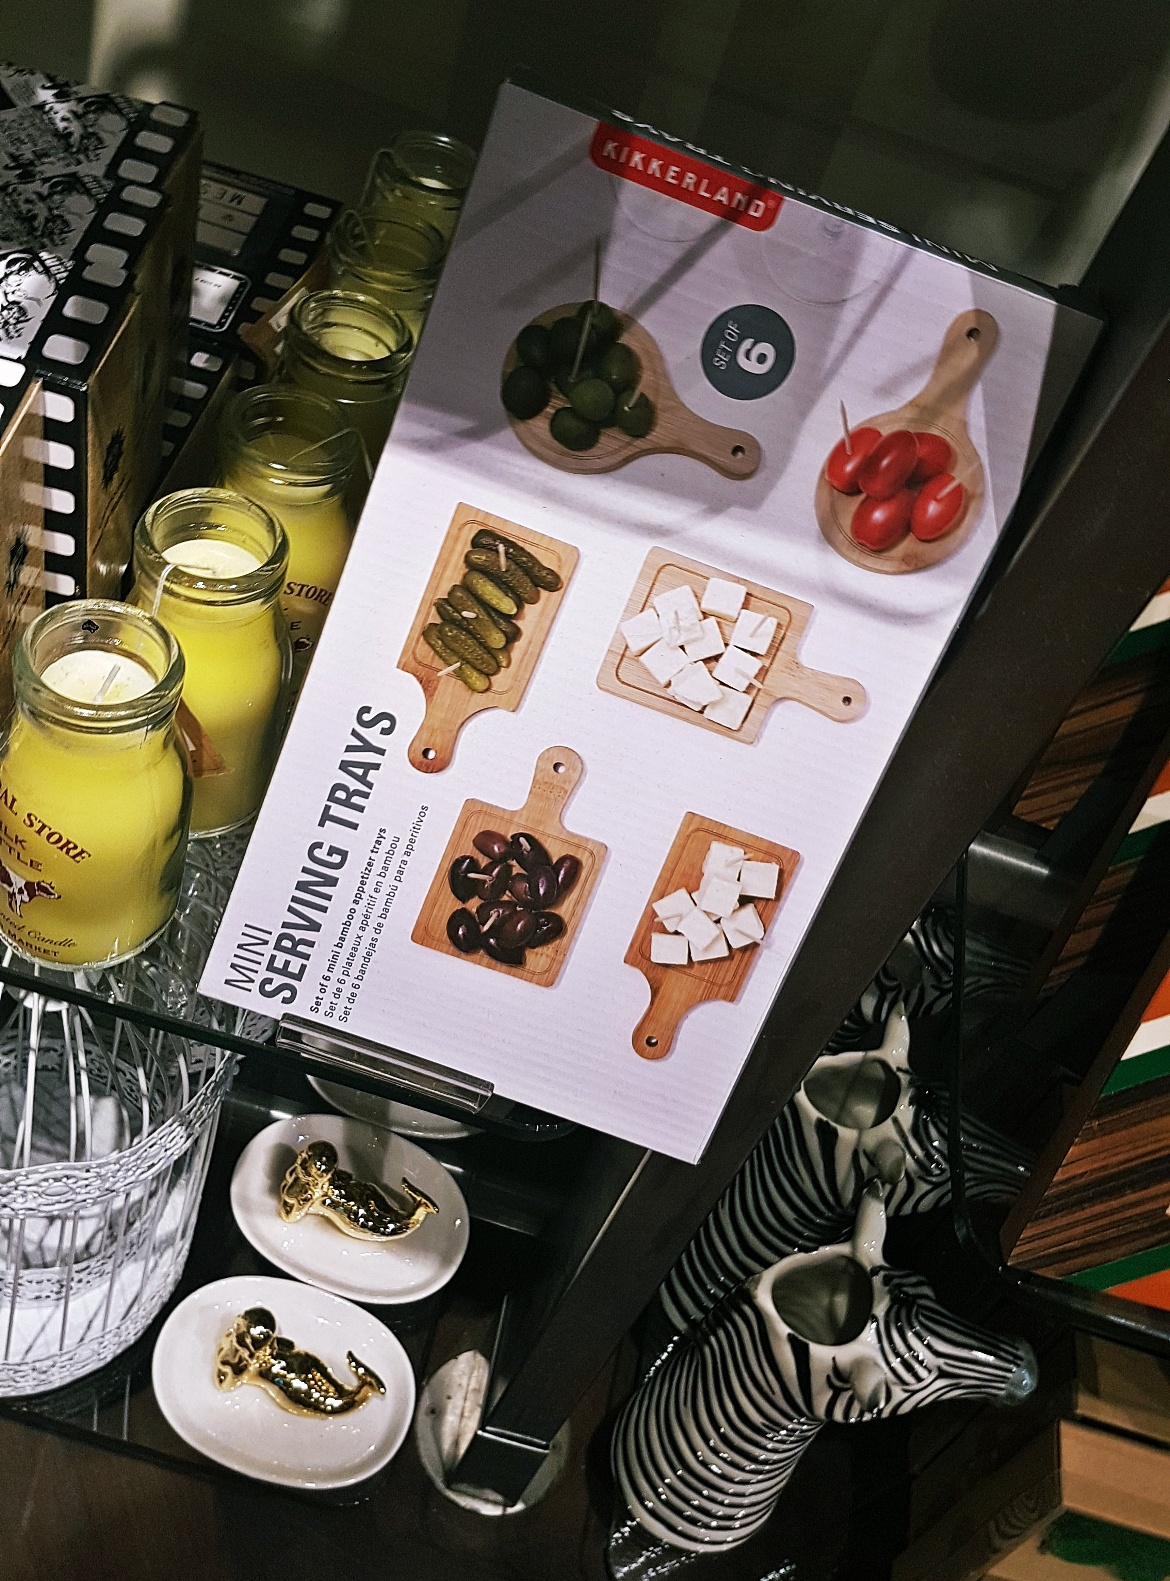 Tiny platters - Tune in with Joy the Store, Leeds shop review by BeckyBecky Blogs